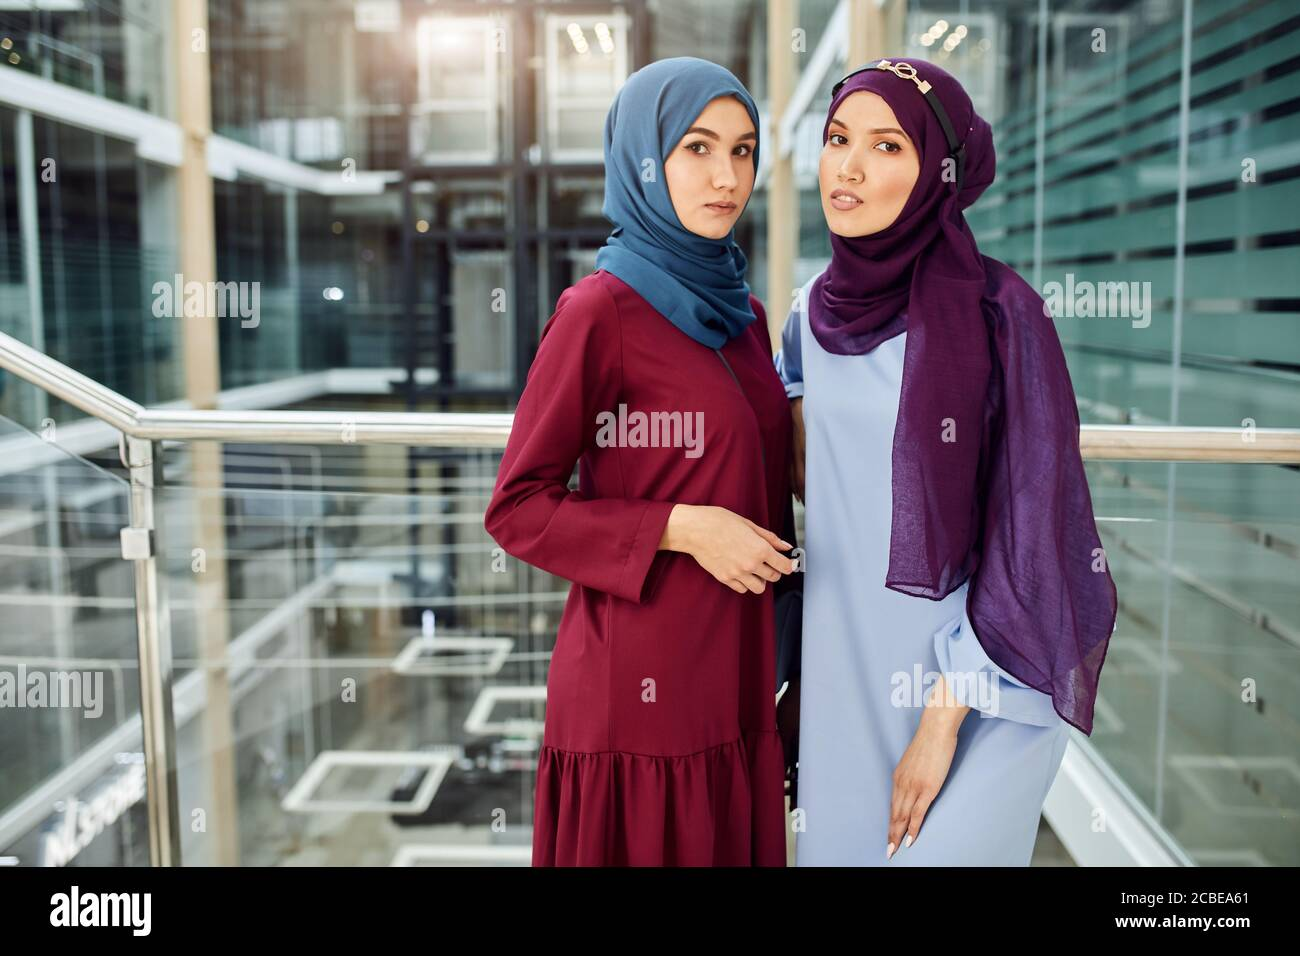 Partnerhoroskop kennen d ahsoker partner tumbrl patrol ragazza bier str. Portrait Of Two Islamic Young Women Dressed In Muslim Wear With Hijabs On Head Looking At Camera While Standing Against Glass And Steel Loft Interior Stock Photo Alamy